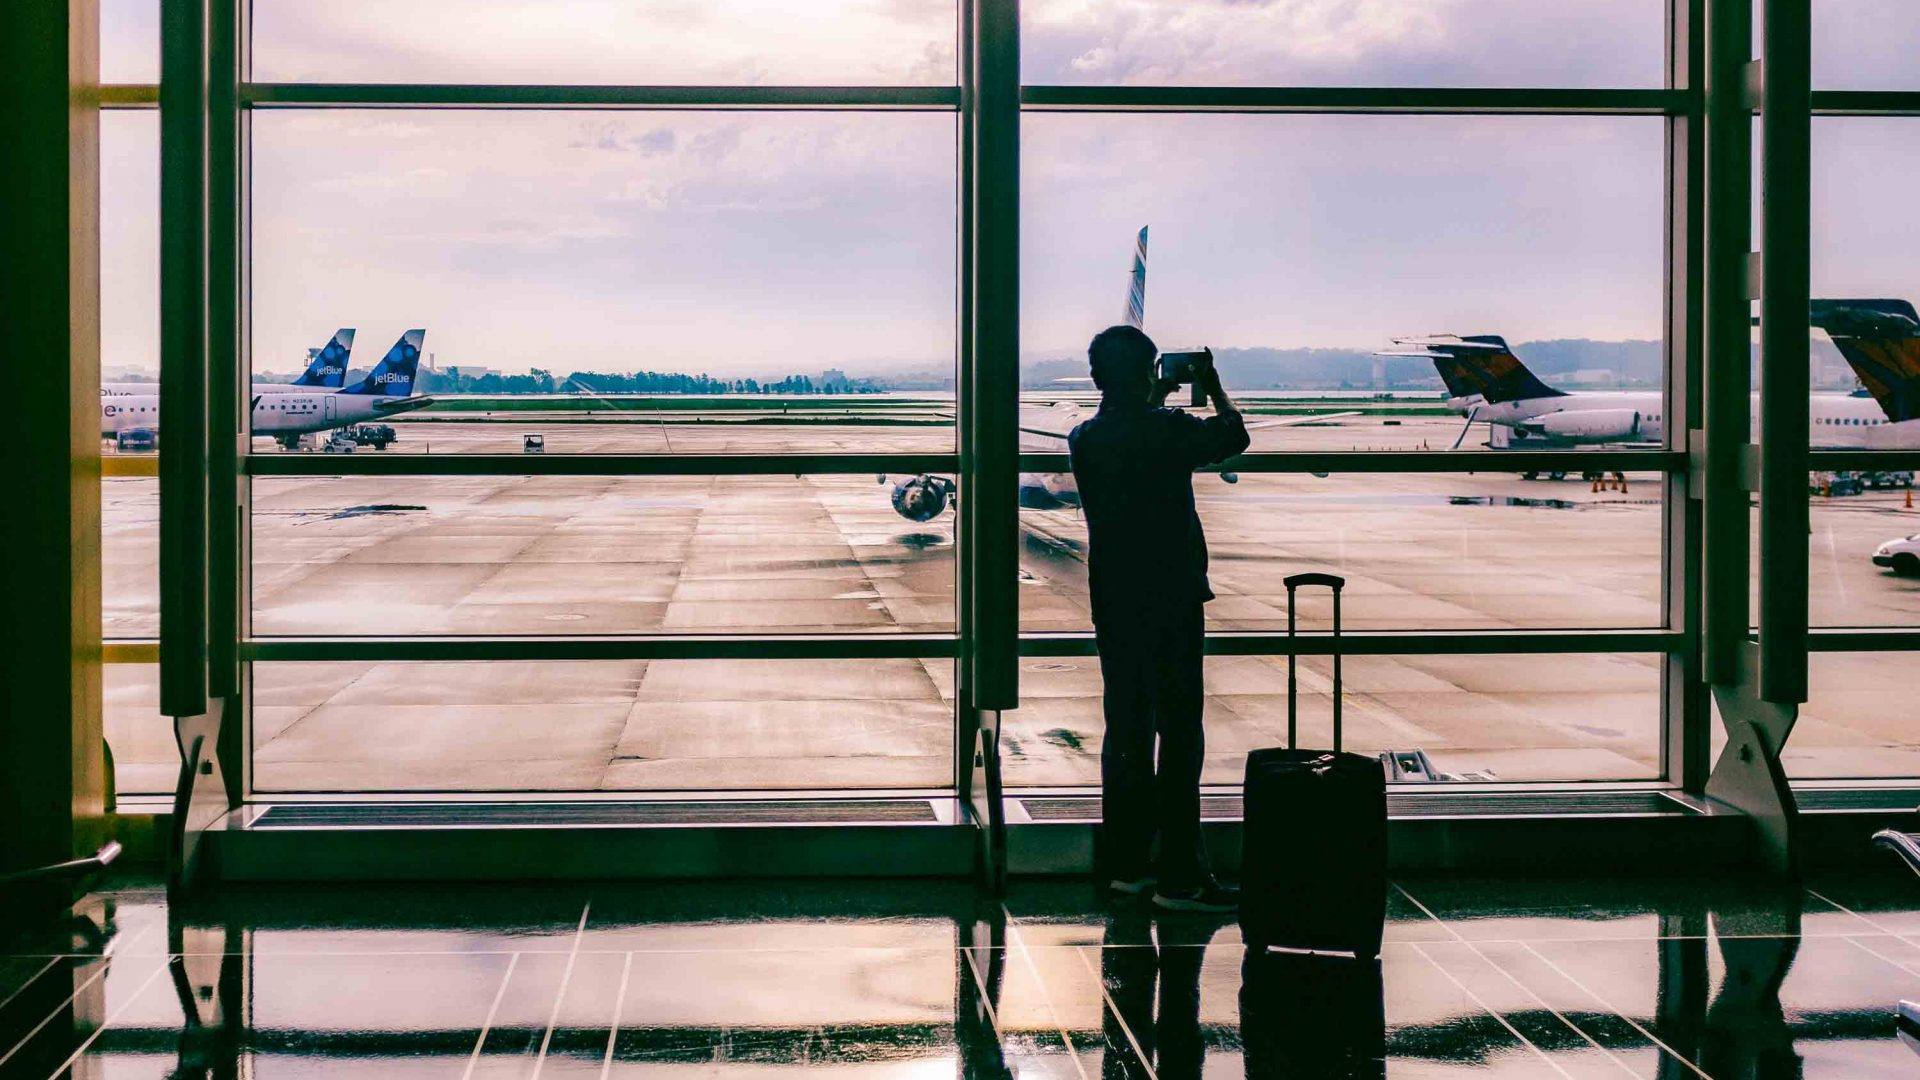 Flying phobia: A man looks out at the airplanes at an airport.